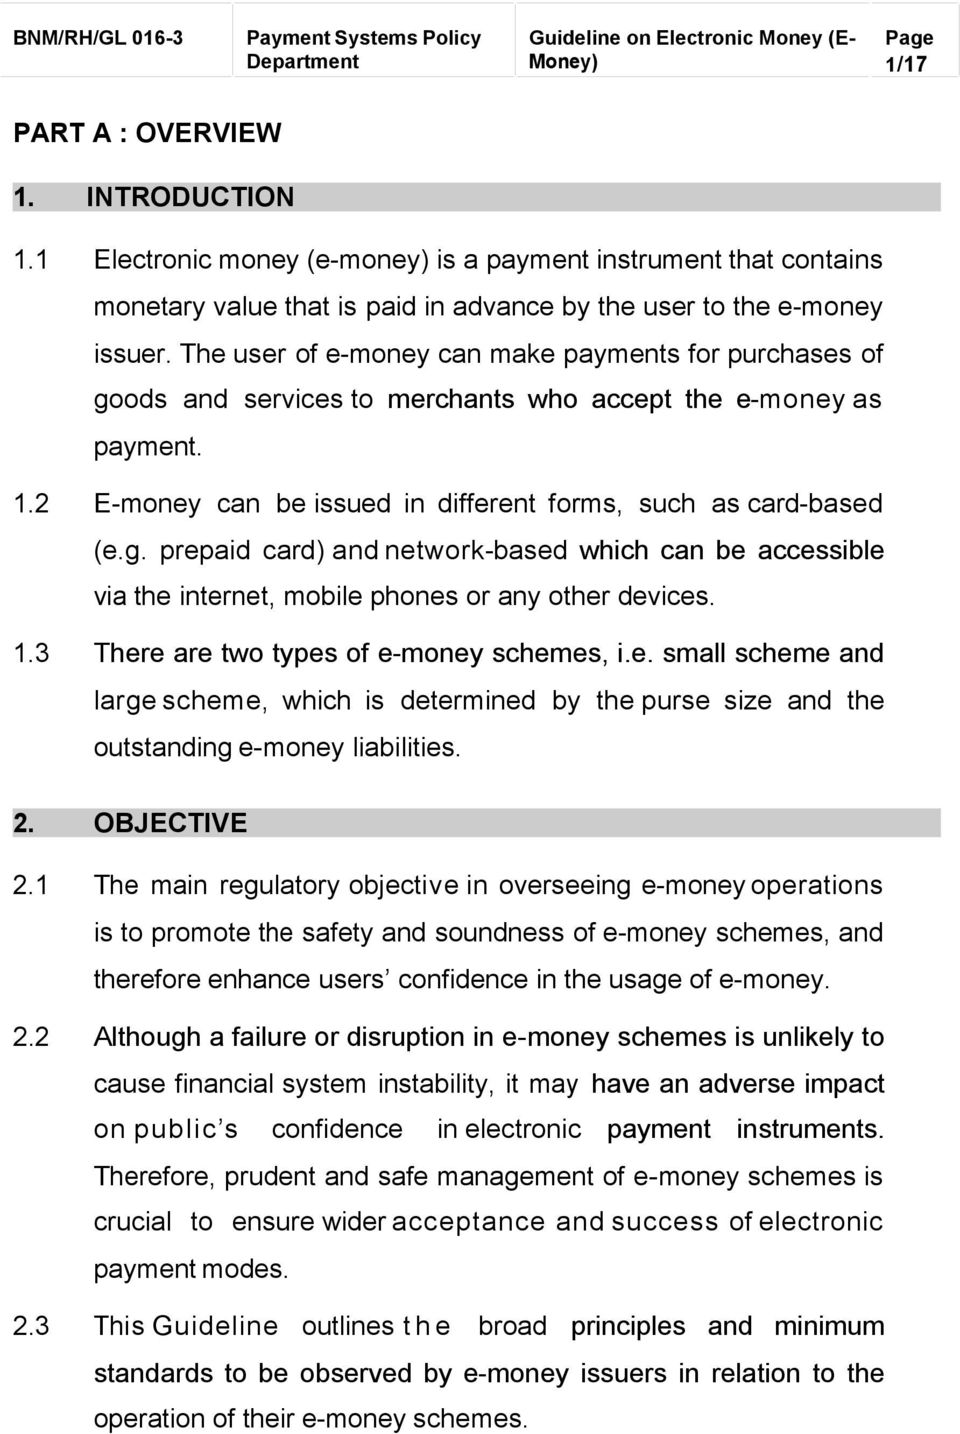 1.3 There are two types of e-money schemes, i.e. small scheme and large scheme, which is determined by the purse size and the outstanding e-money liabilities. 2. OBJECTIVE 2.